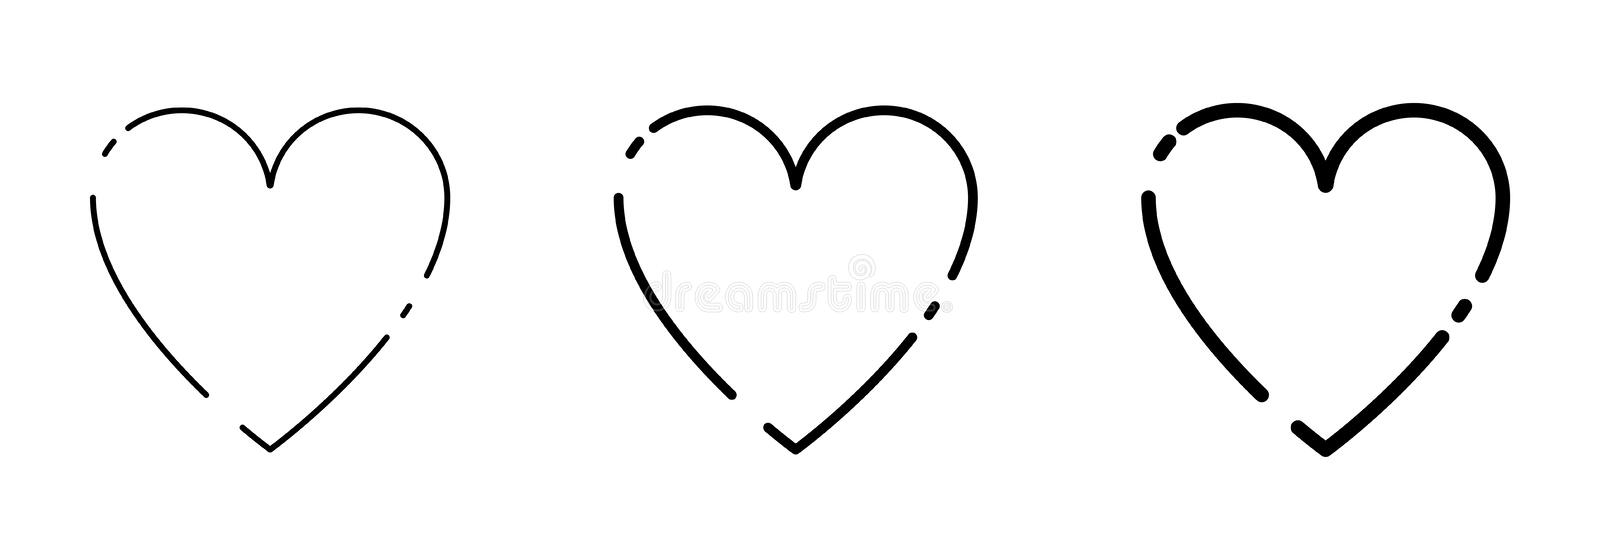 Collection Black Heart icons in lines design stock illustration